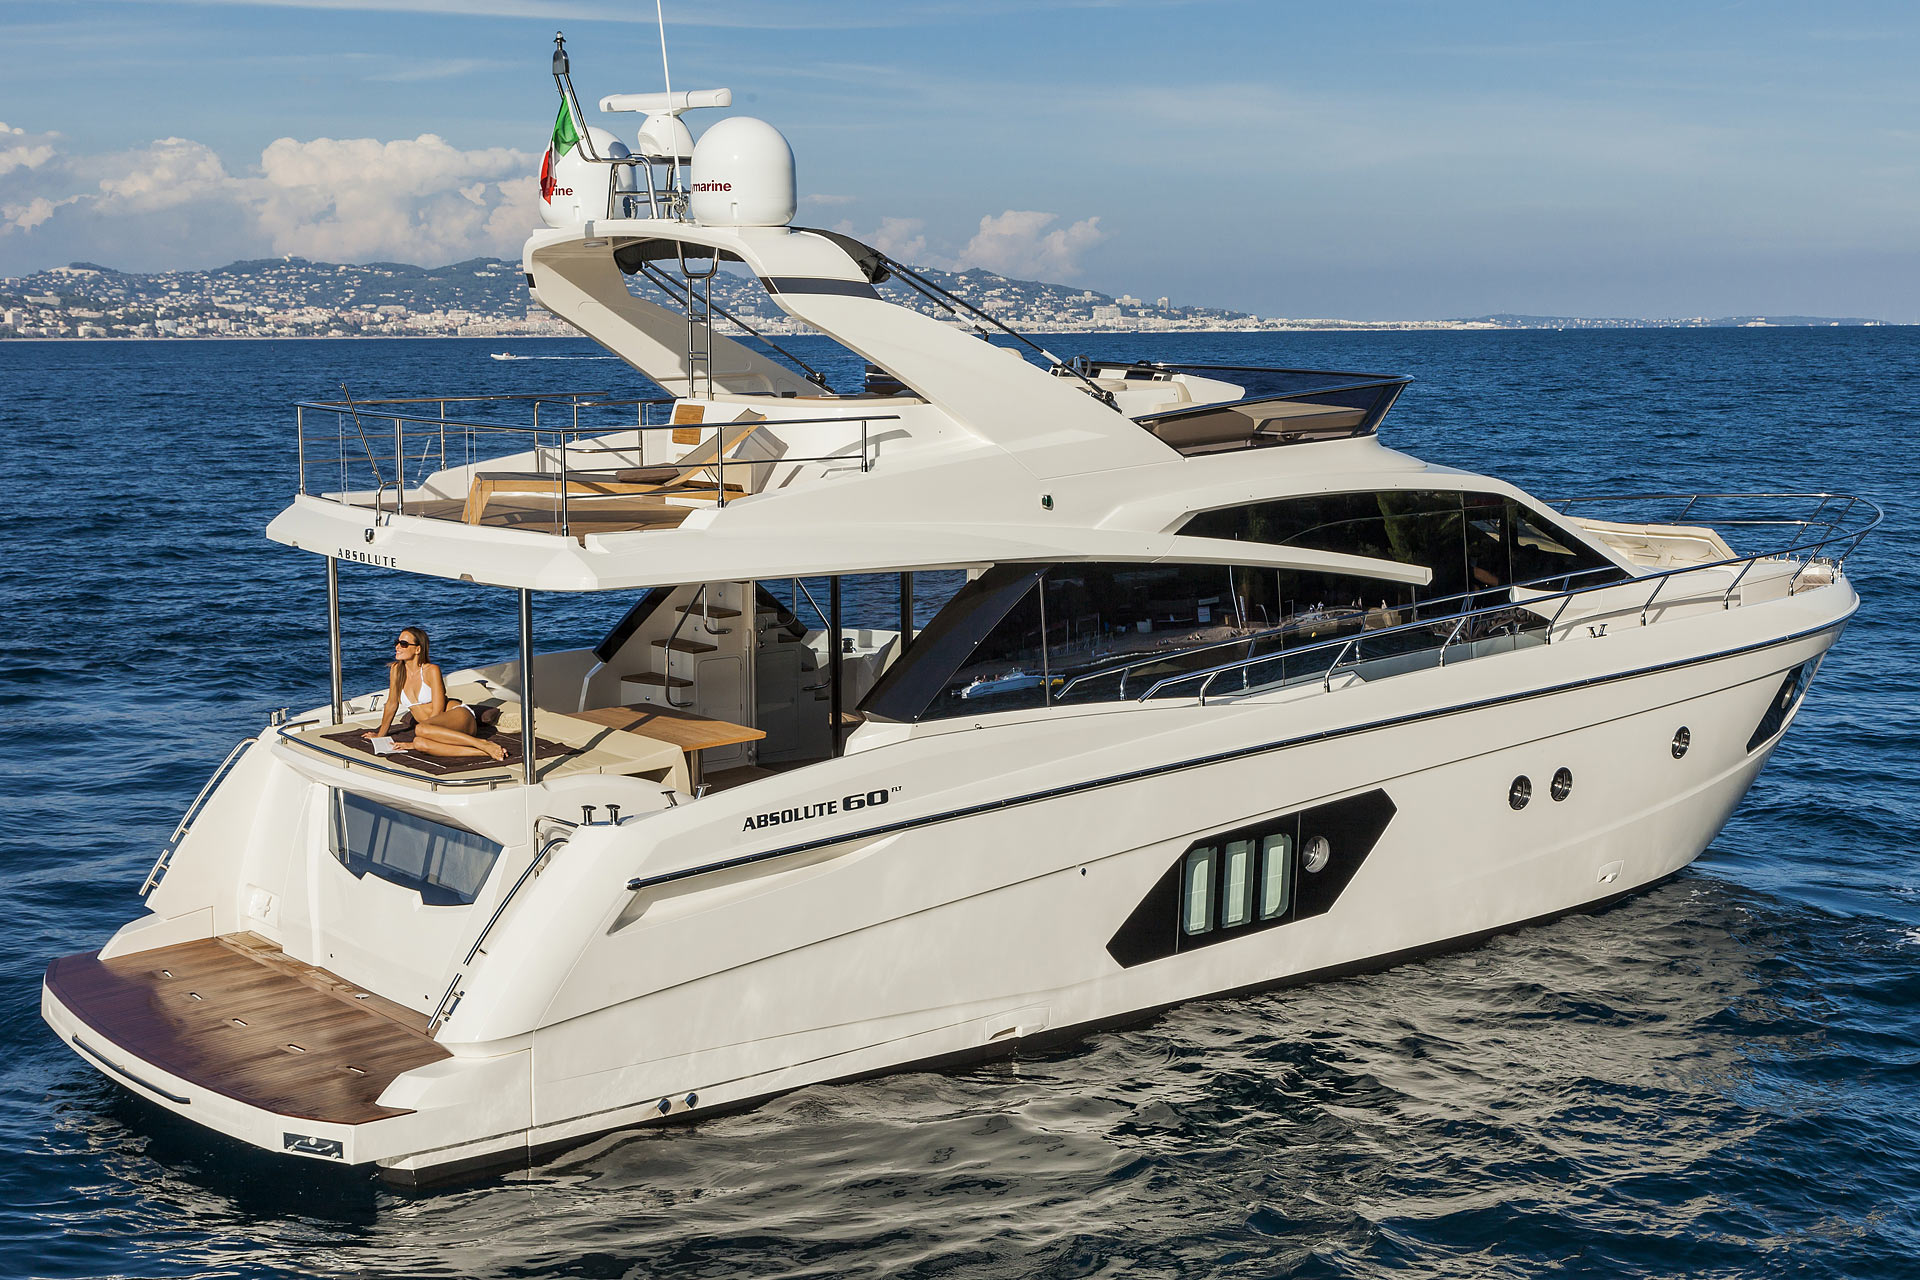 Absolute 60 Fly Luxury Yacht Fractional Ownership for sale in Newport Beach